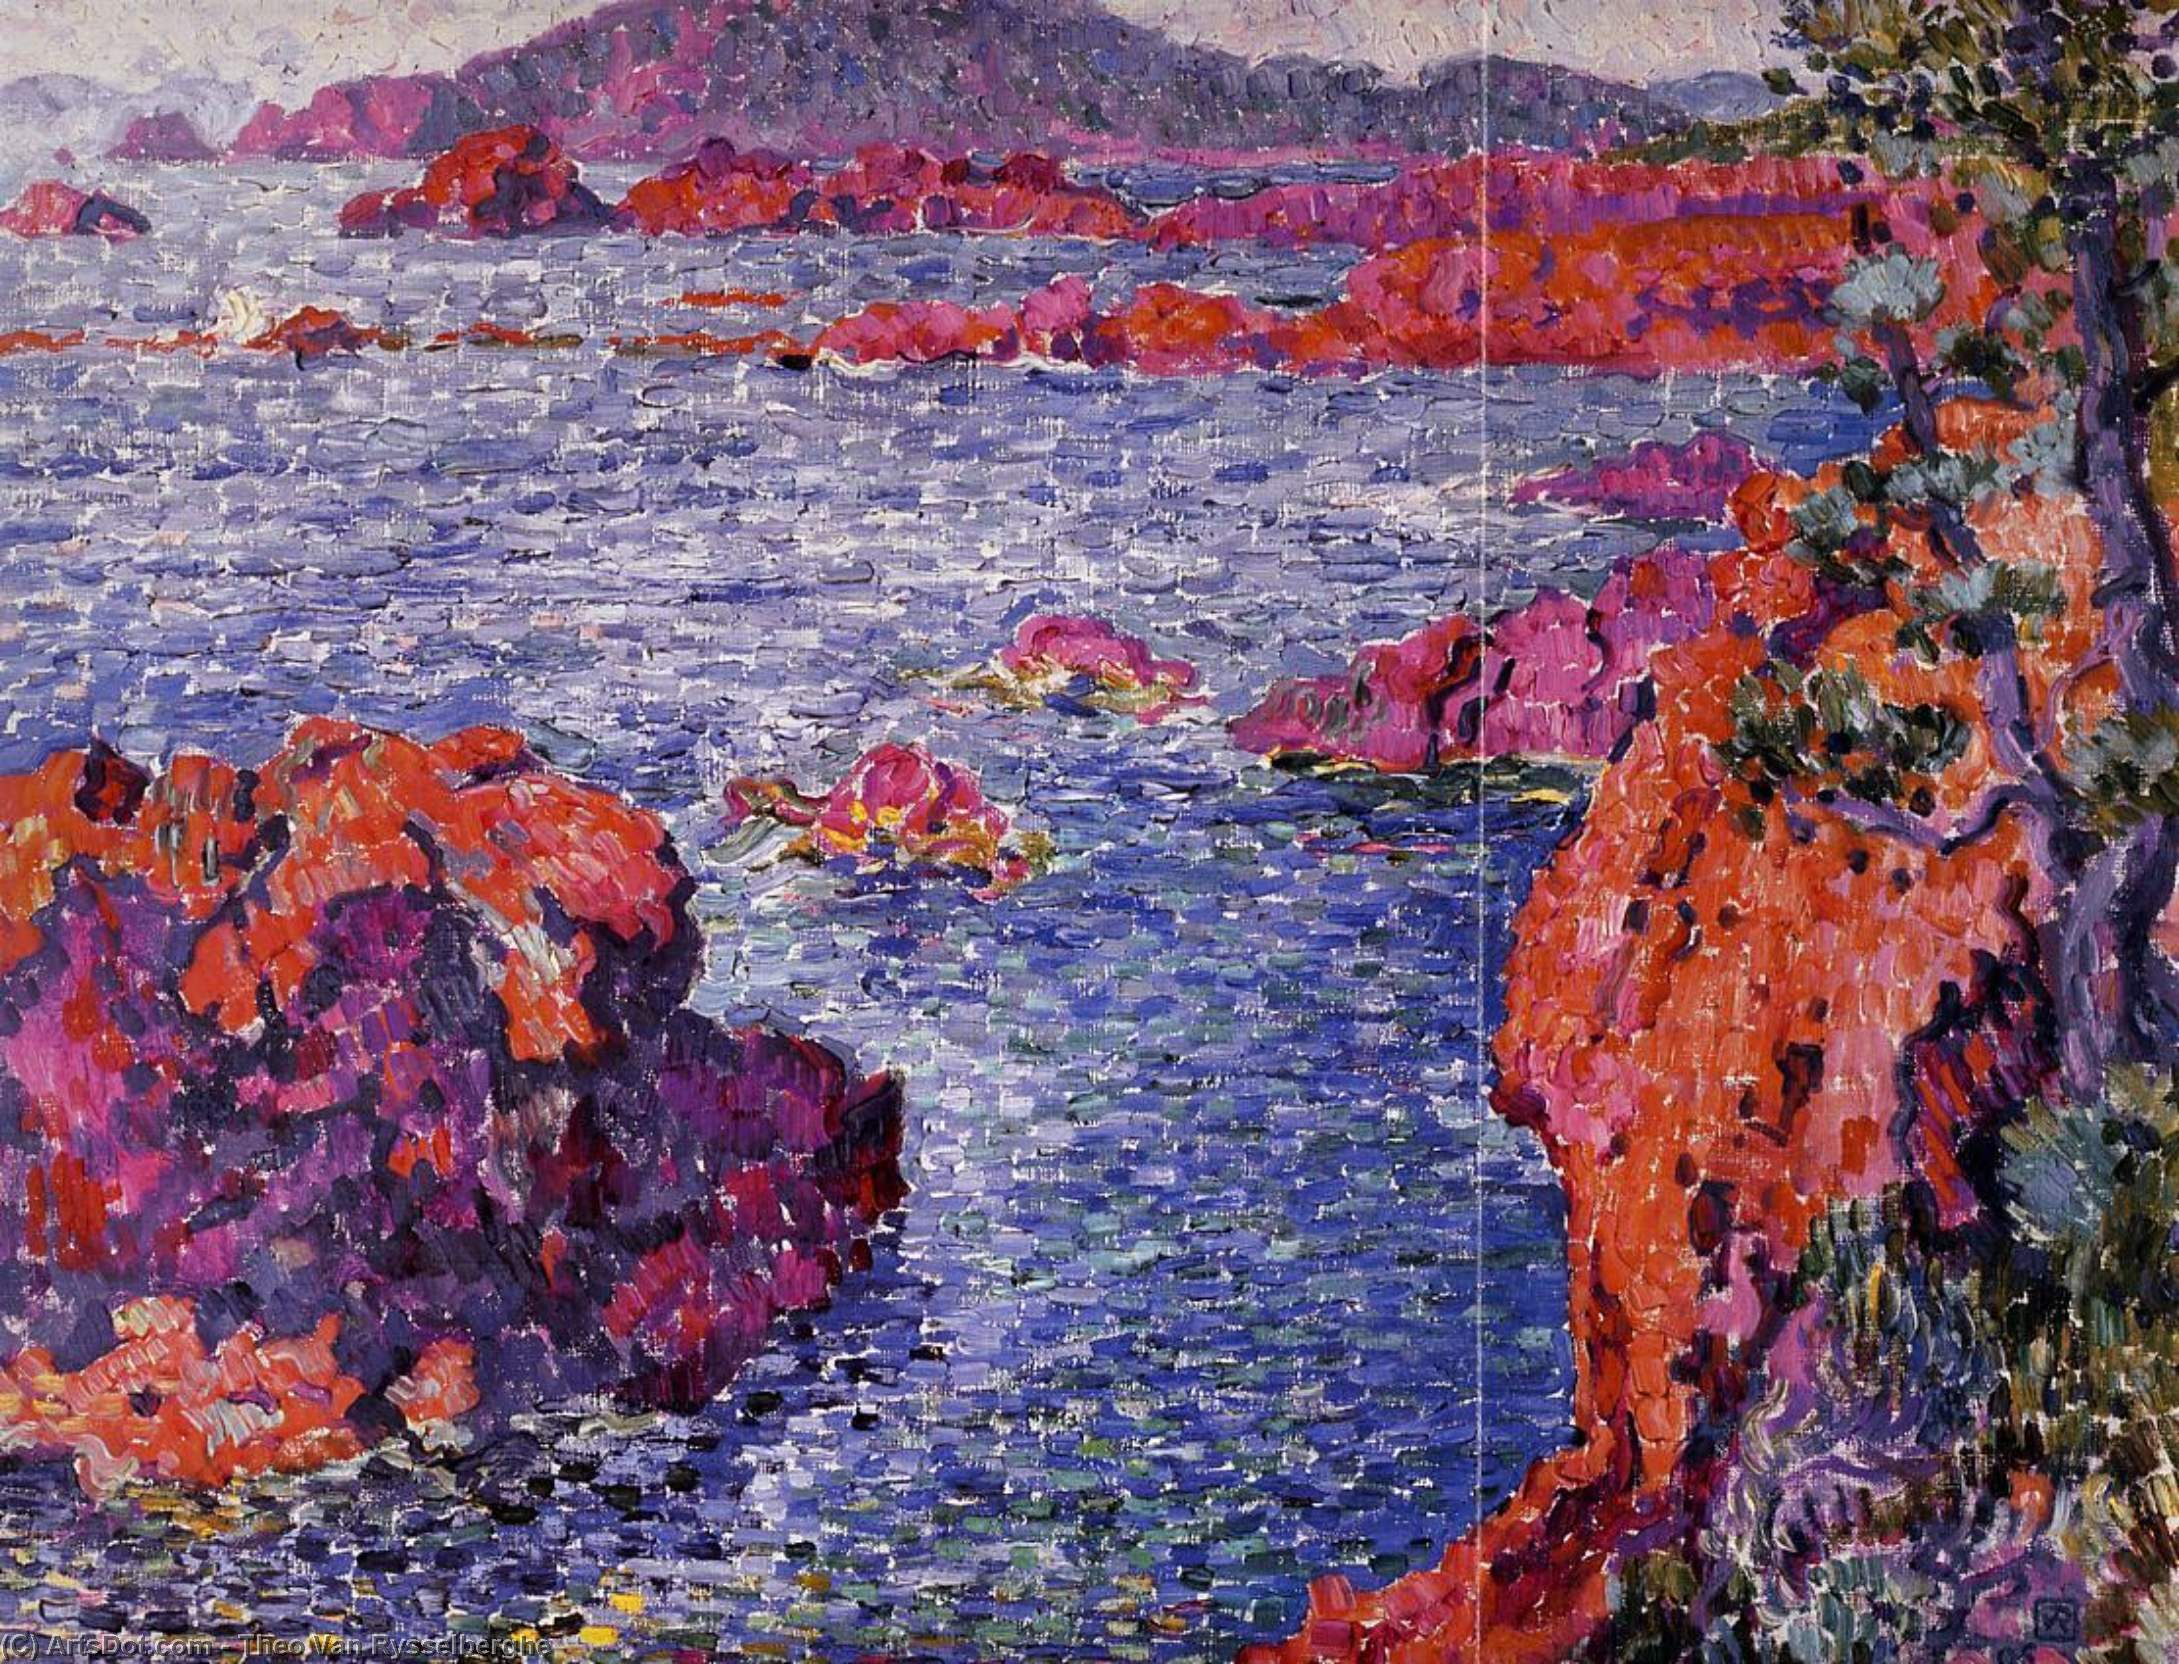 Rocks at Antheor, Oil On Canvas by Theo Van Rysselberghe (1862-1926, Belgium)